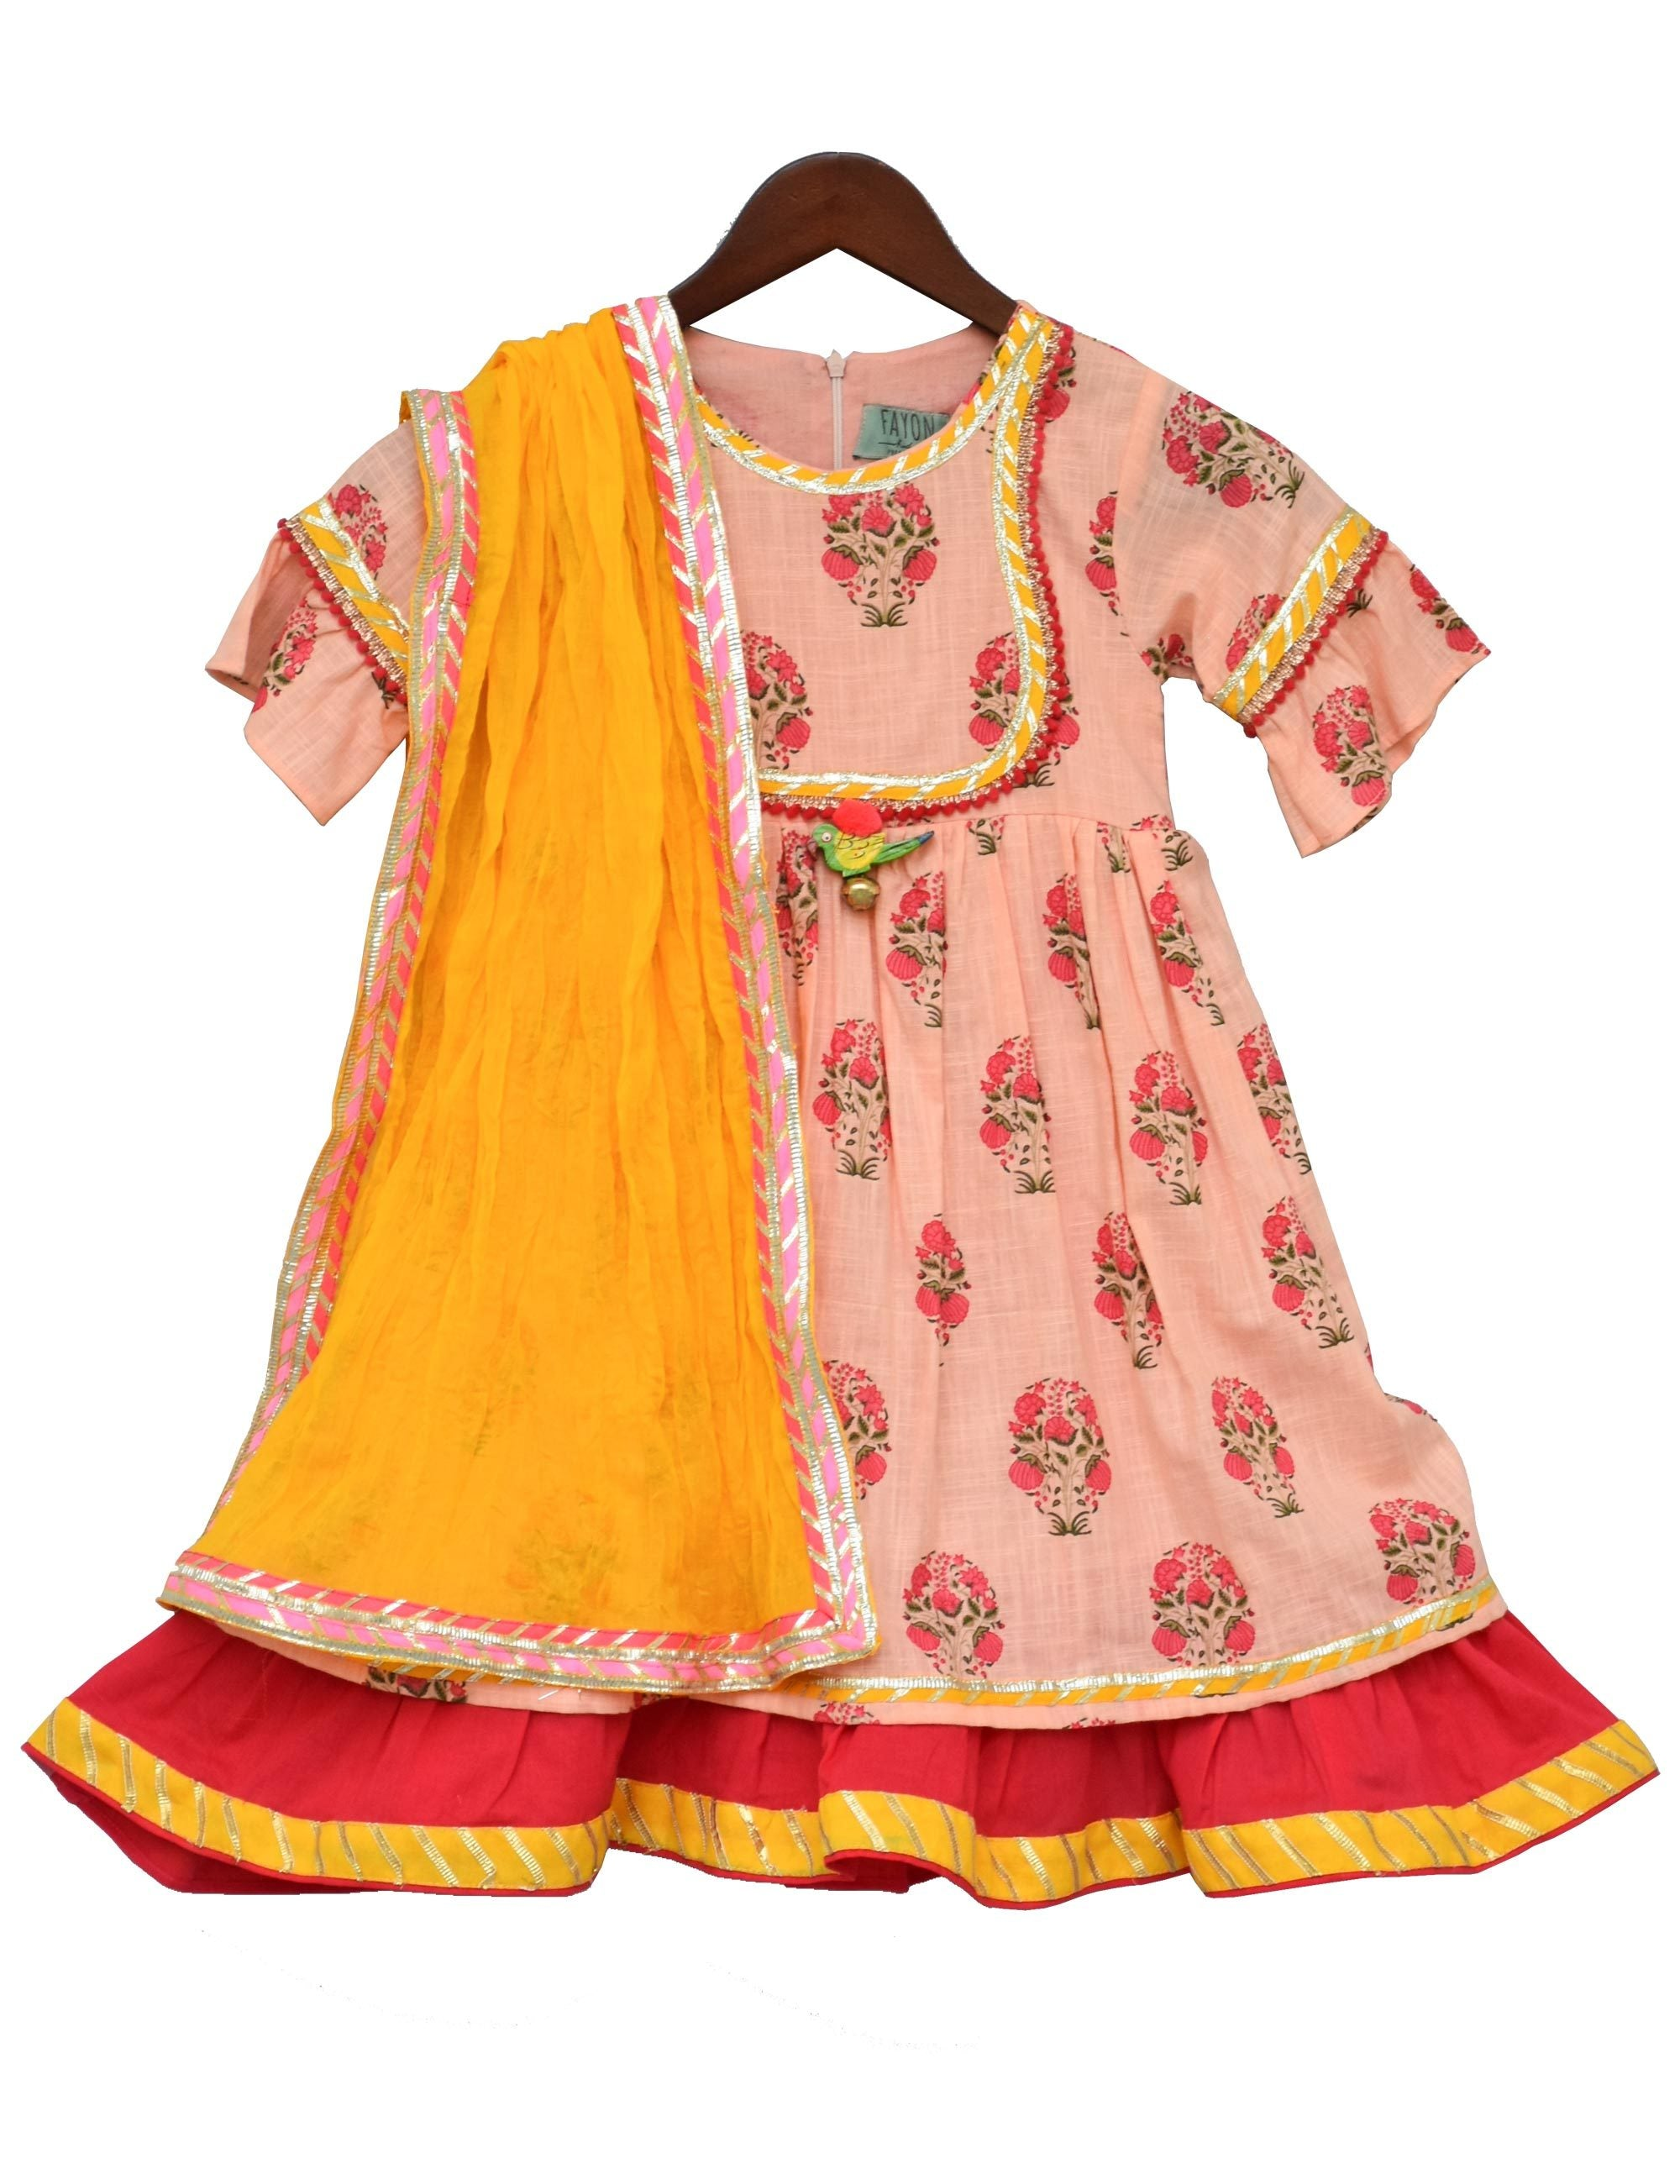 Peach Flower Print Anarkali with Yellow Dupatta